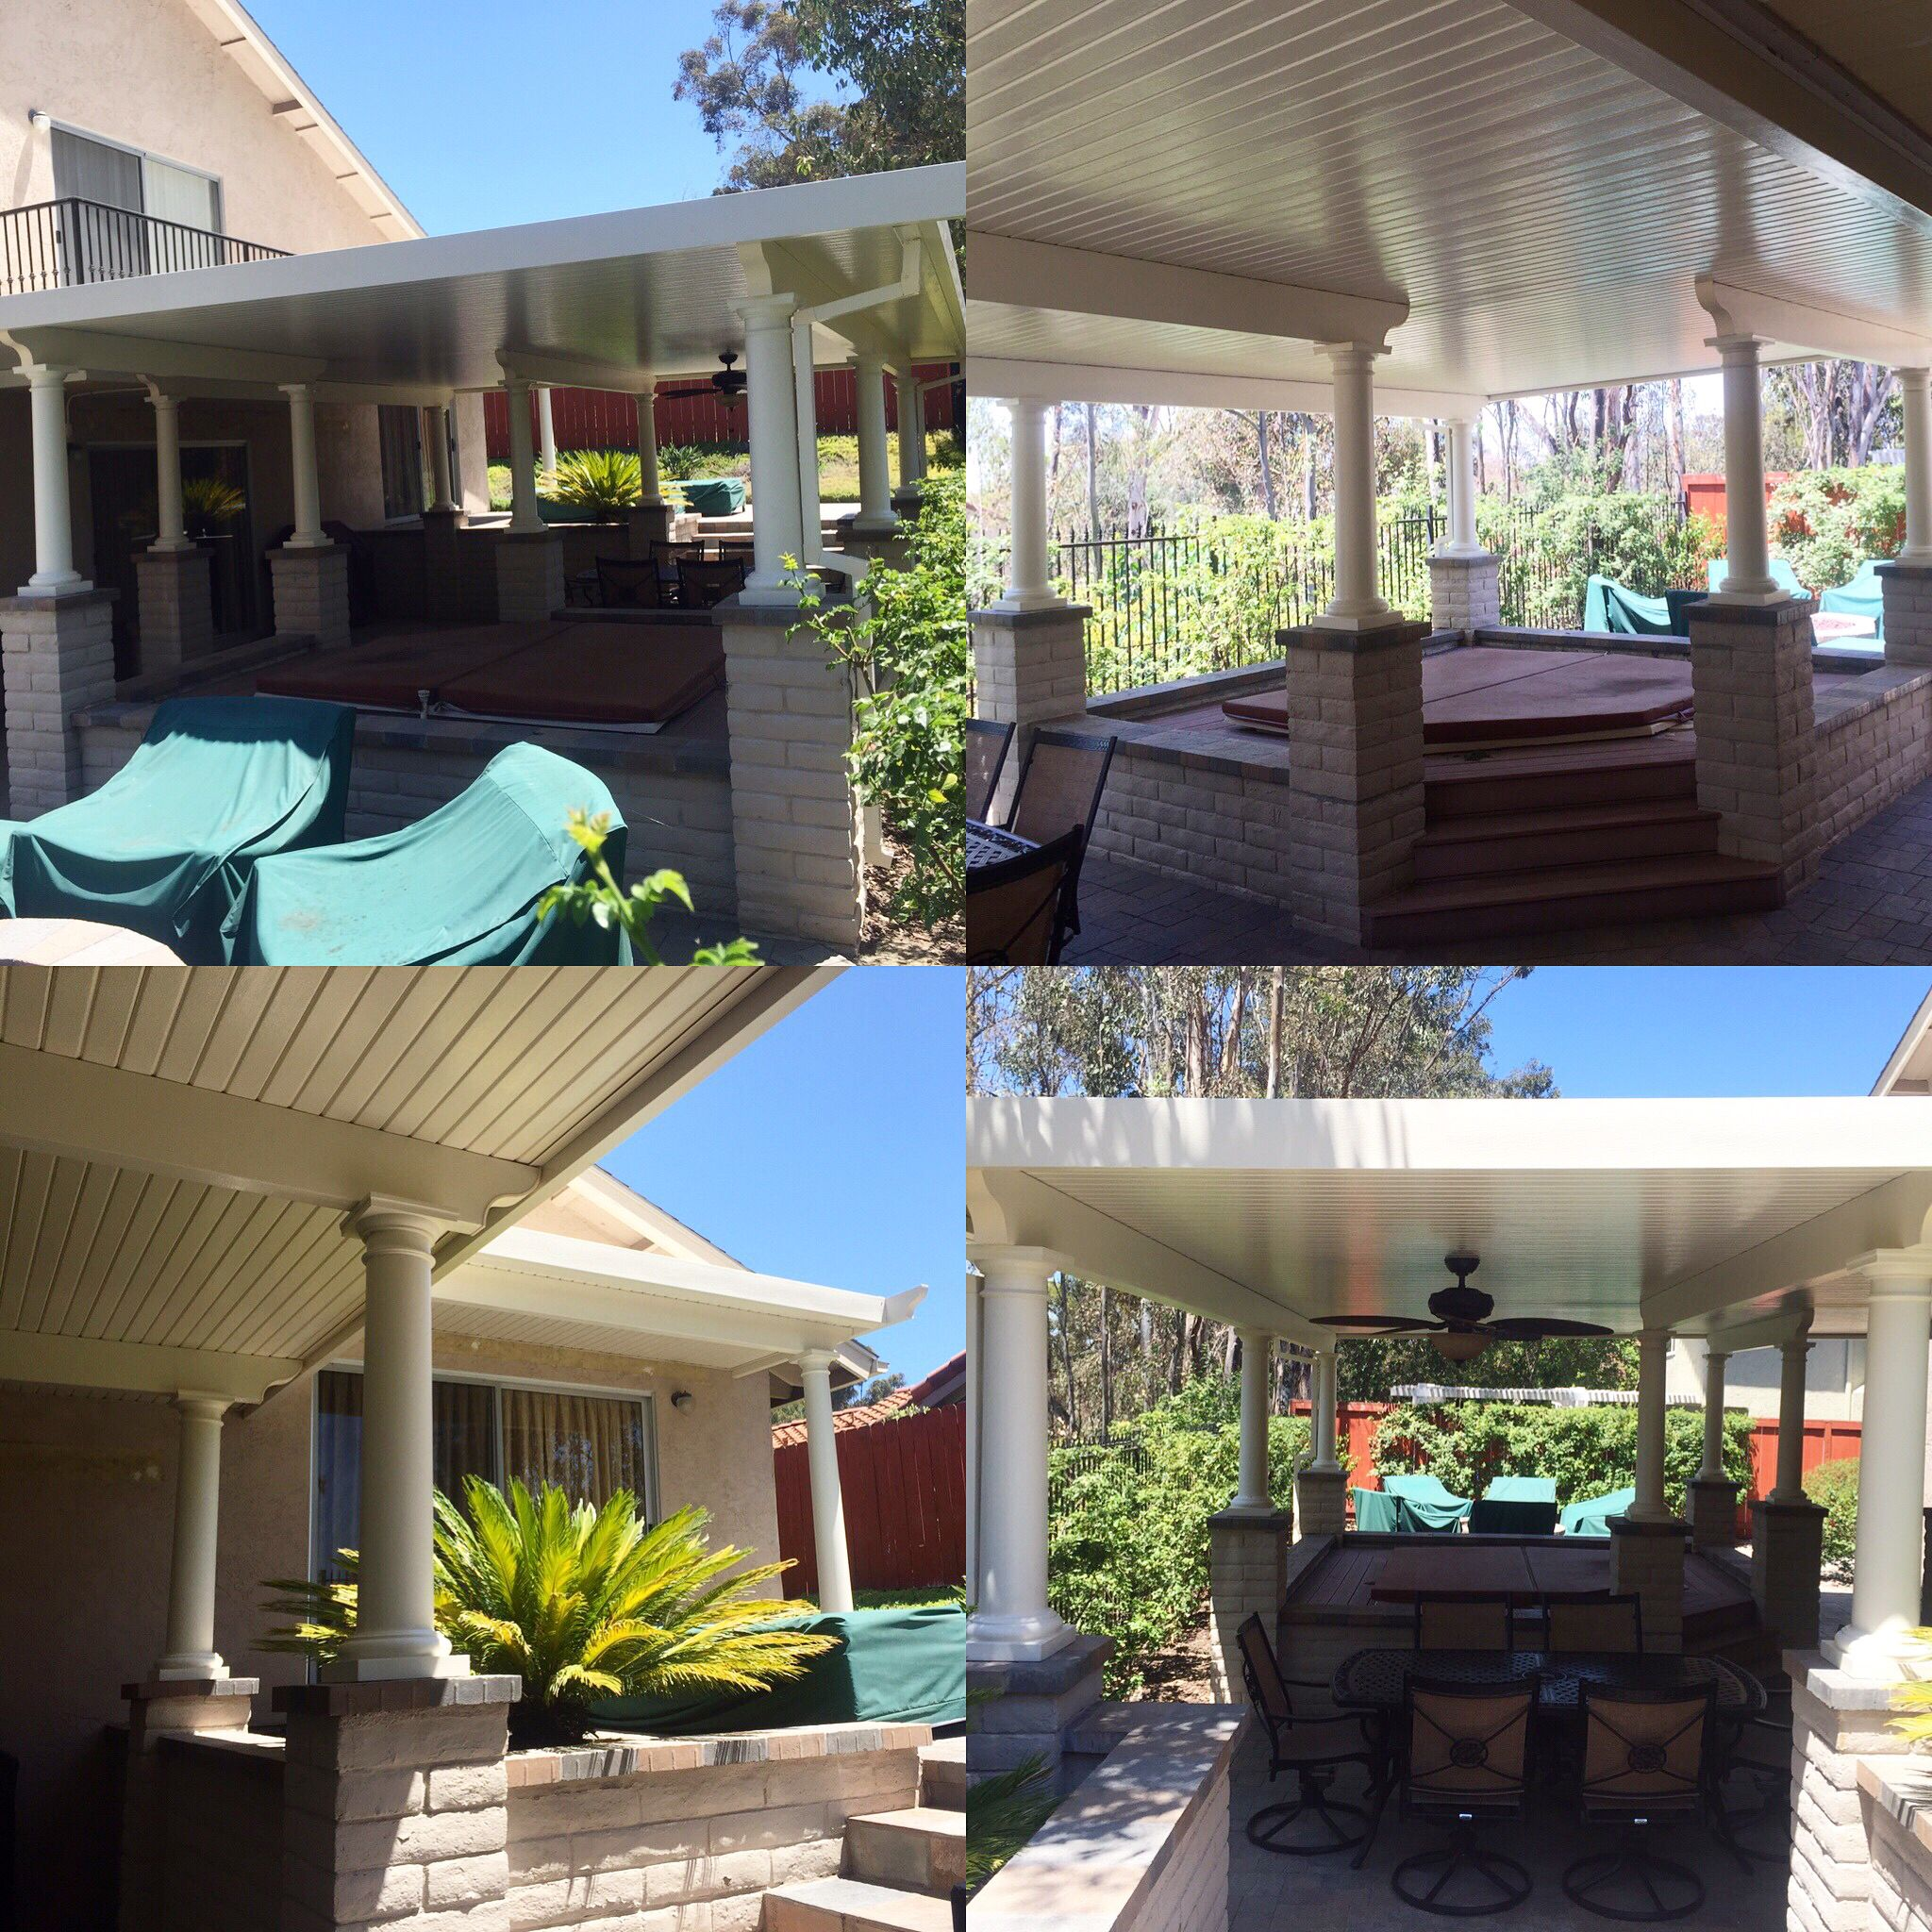 diy Alumawood patio cover kit Home remodel by